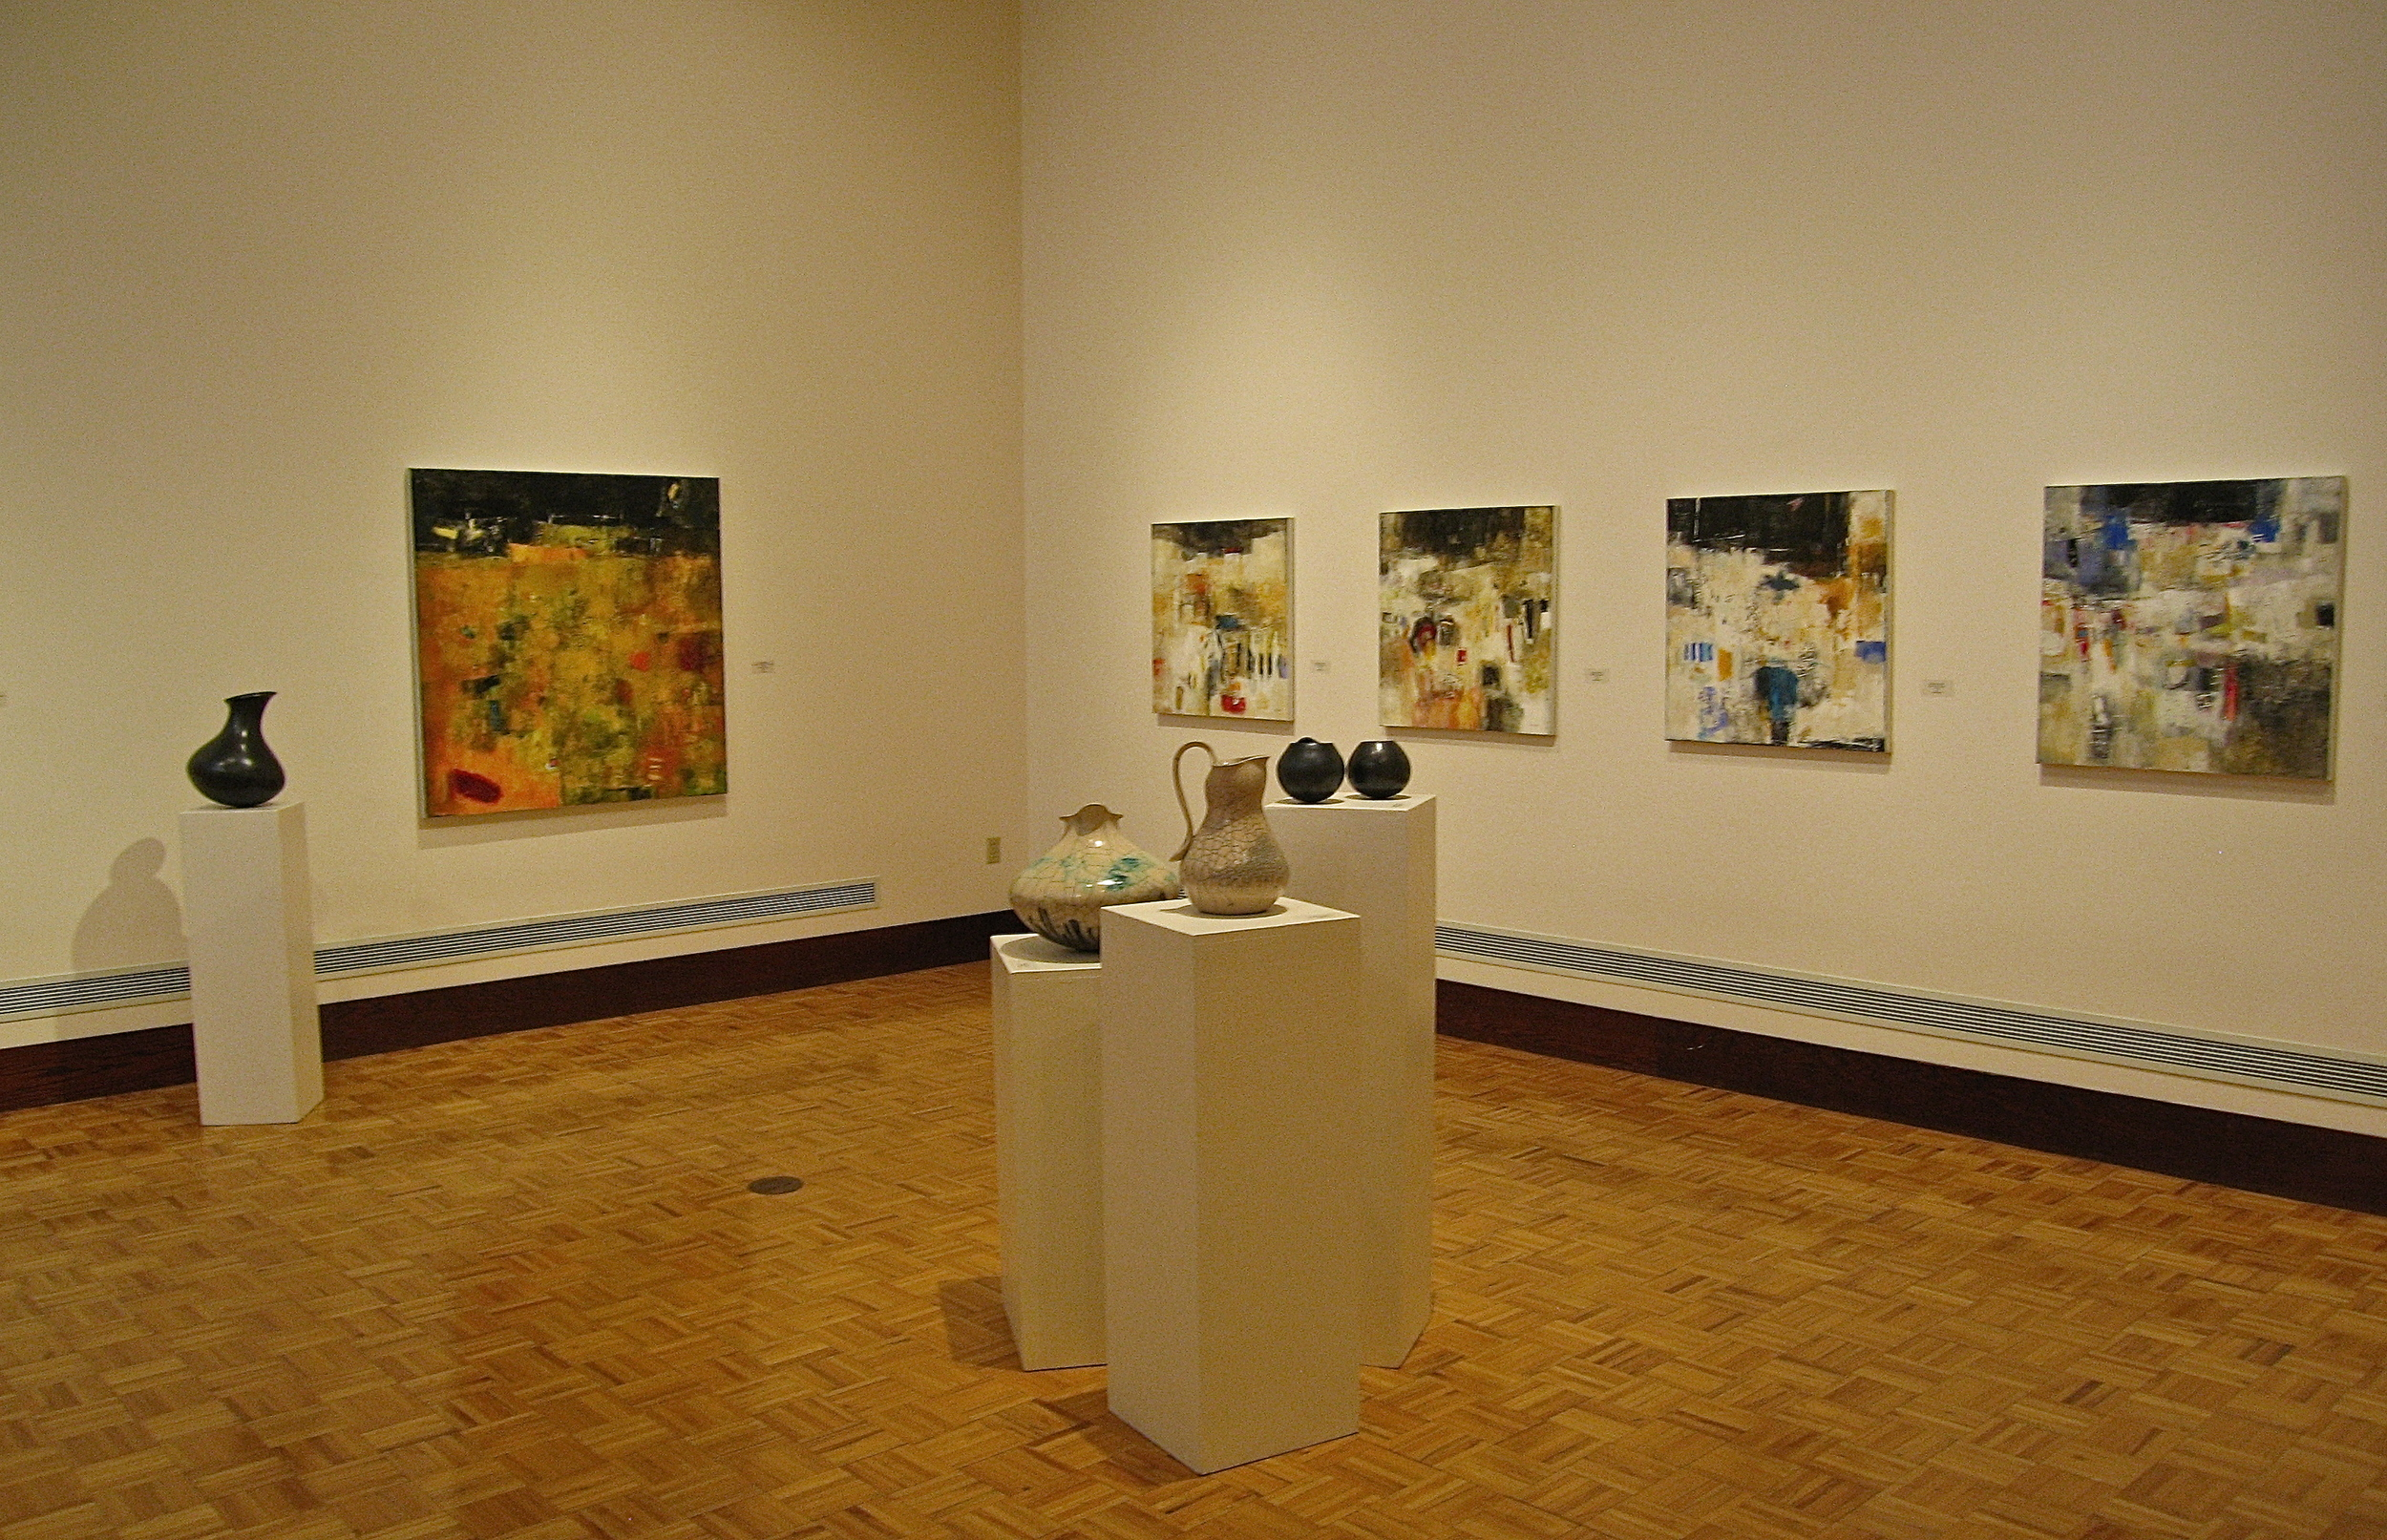 Christel DeHaan Art Gallery, University of Indianapois, IN